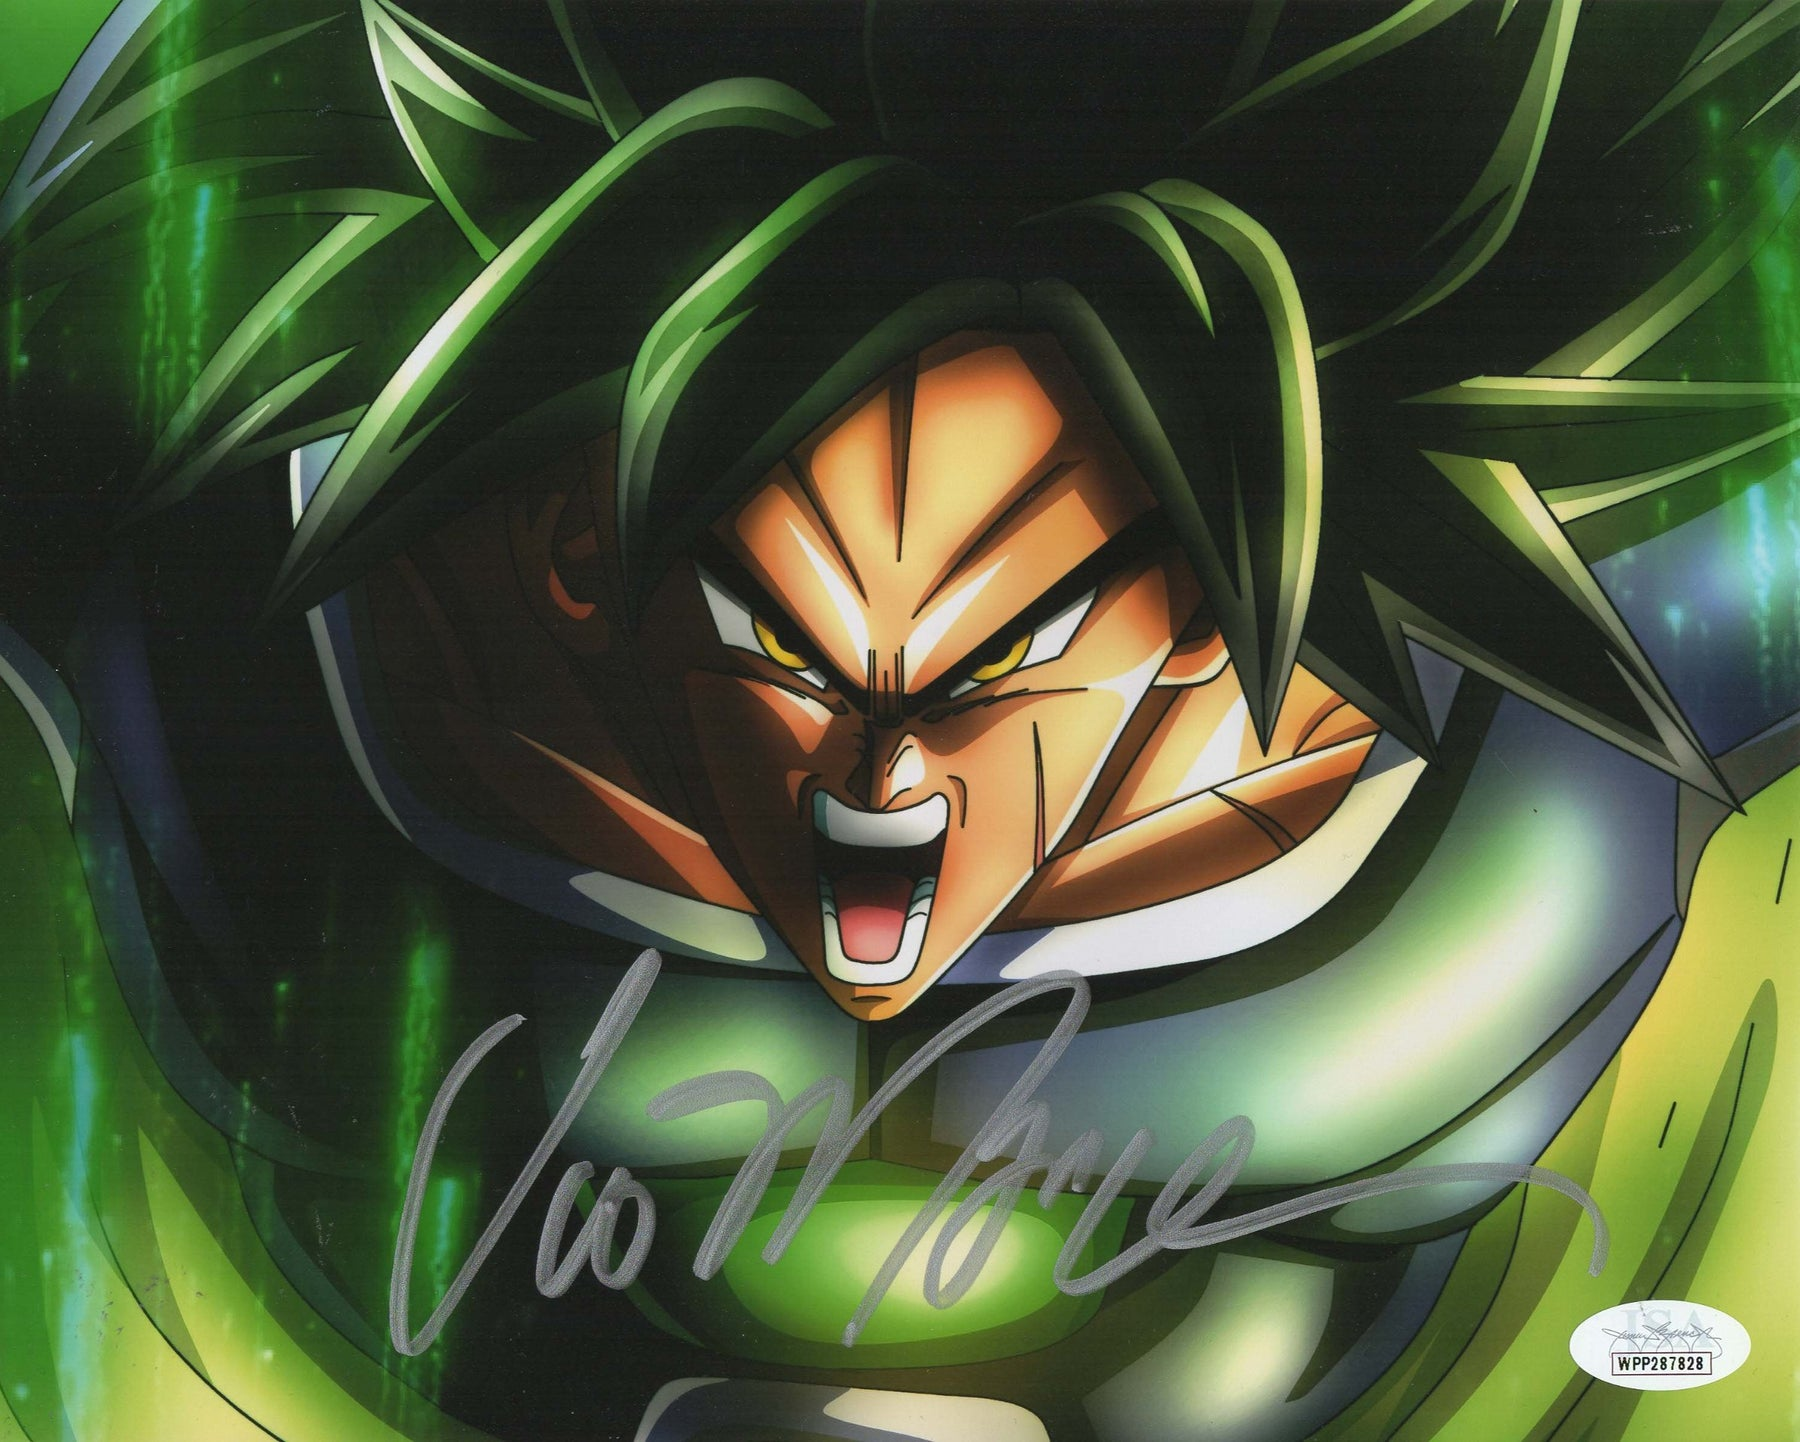 Vic Mignogna Autograph 8x10 Photo Dragon Ball Z Broly Signed JSA COA